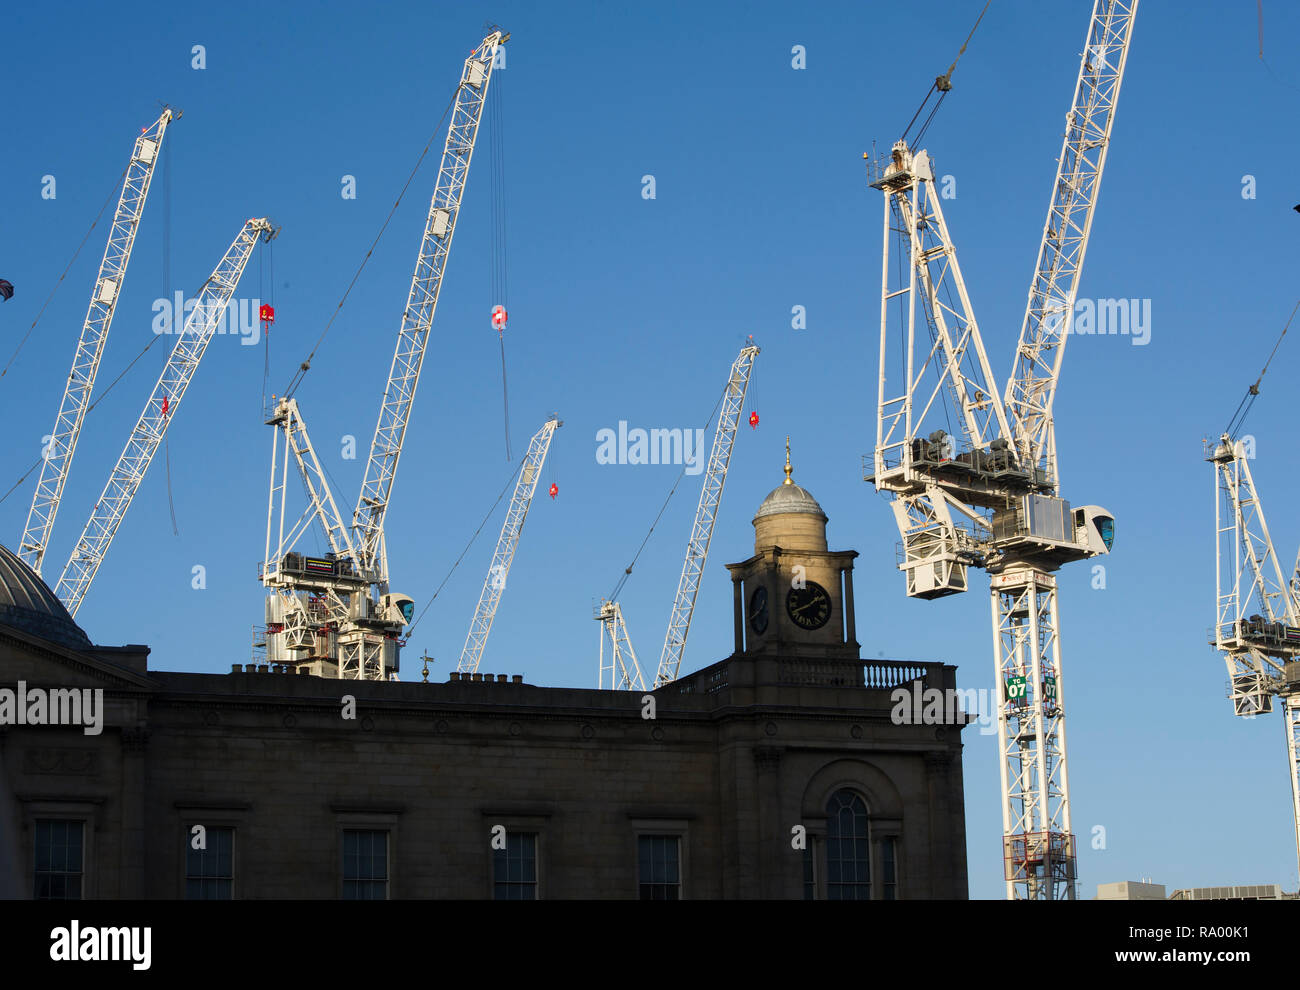 Tower cranes rise up from the St James centre development at the east end of Princes street, Edinburgh. - Stock Image